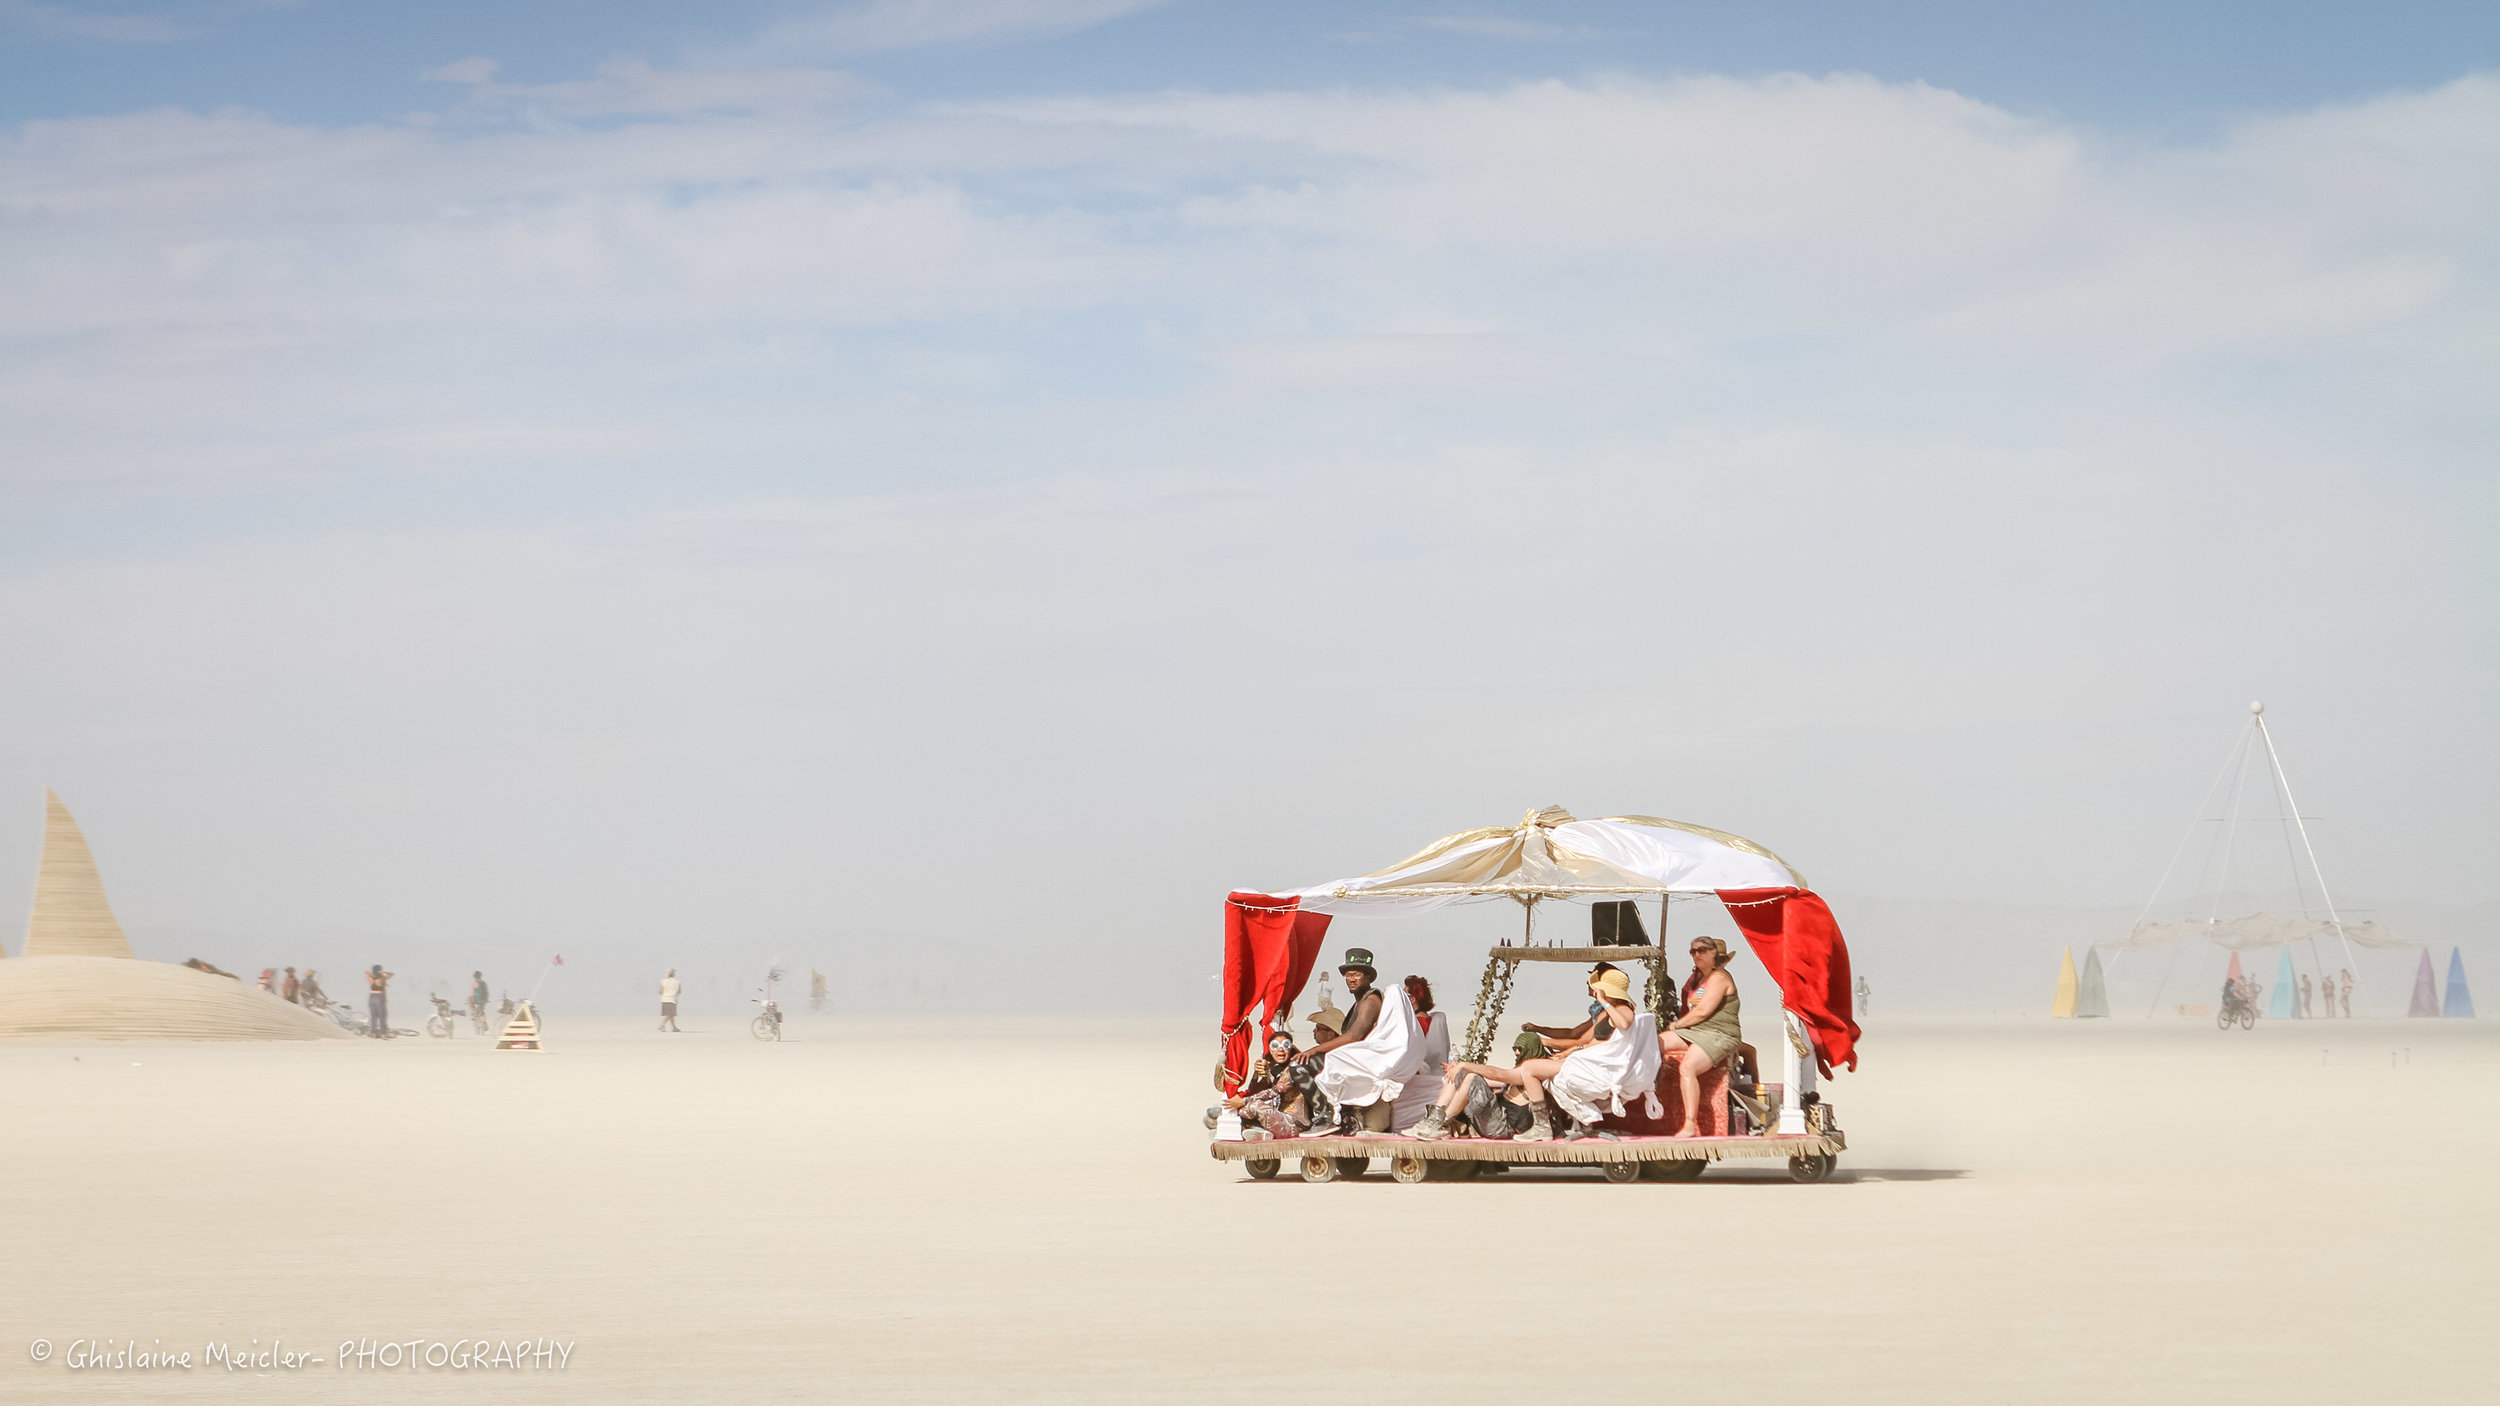 Burning Man-17468.jpg